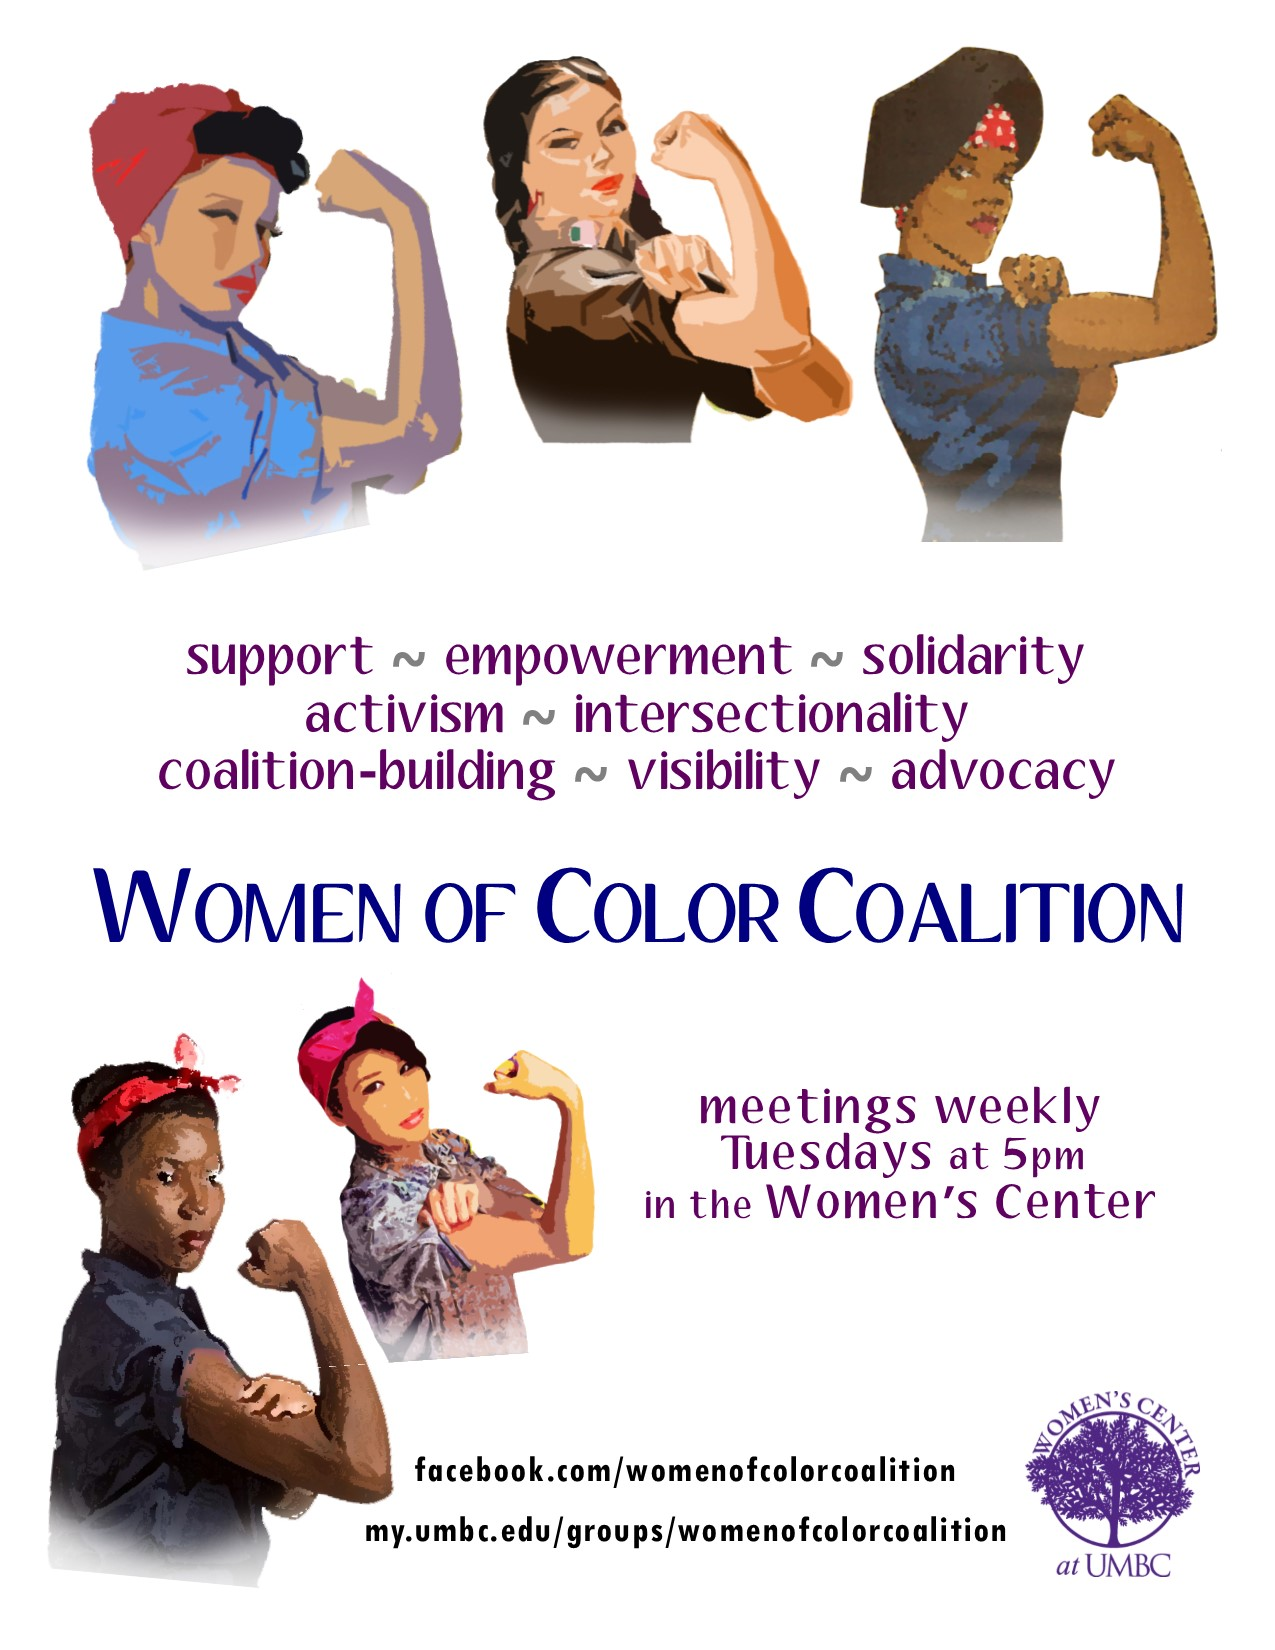 Women of Color Coalition